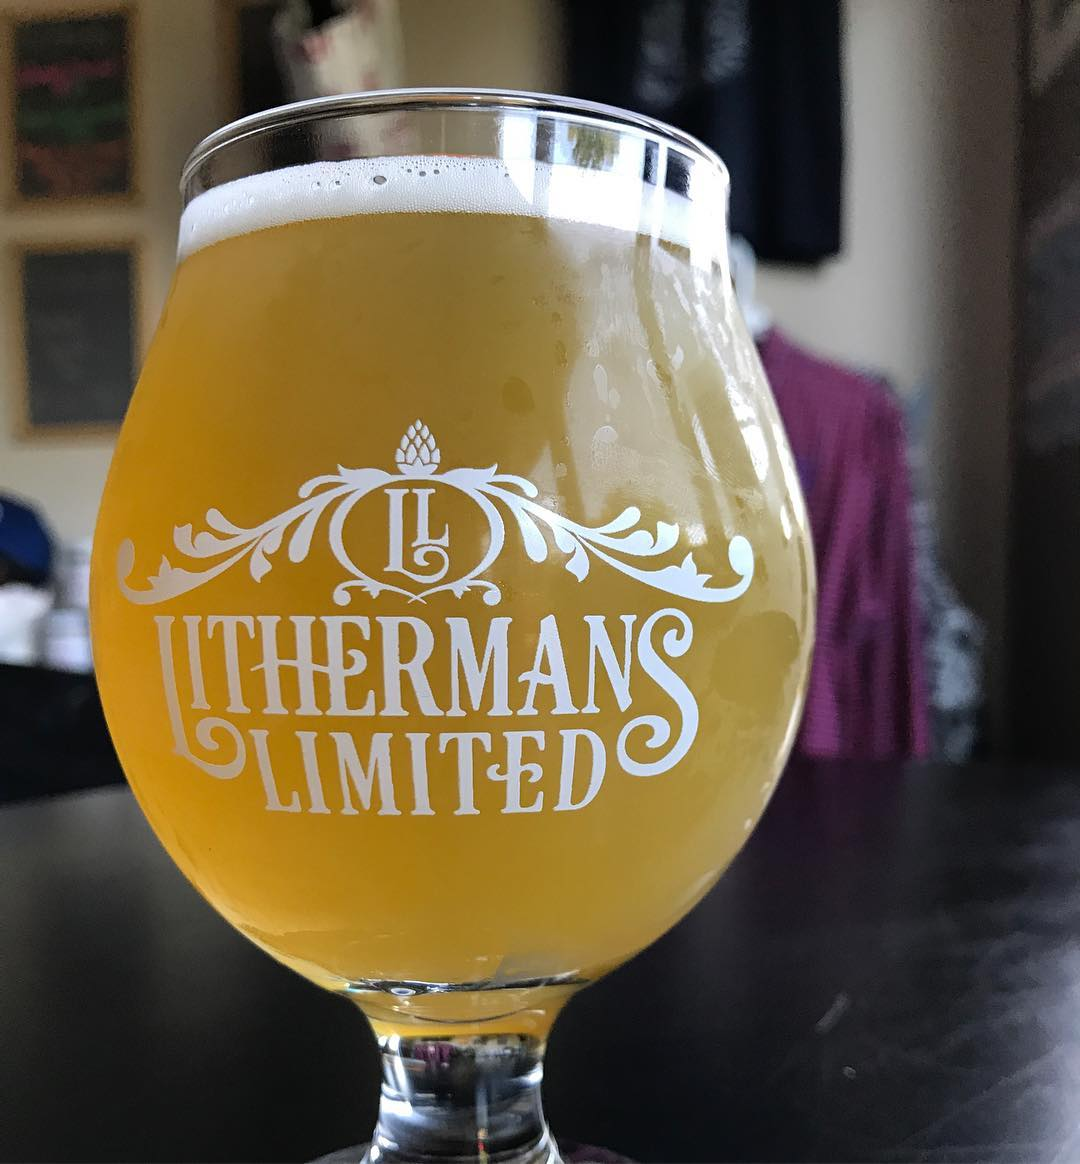 Tasting room is open today from 12-5pm. We are starting off the day with 8 beers on tap including a fresh batch of A Chai Called Quest and Raspberry Beret! #lithermanslimited #concordnh #nhbeer #MHPlikes days off